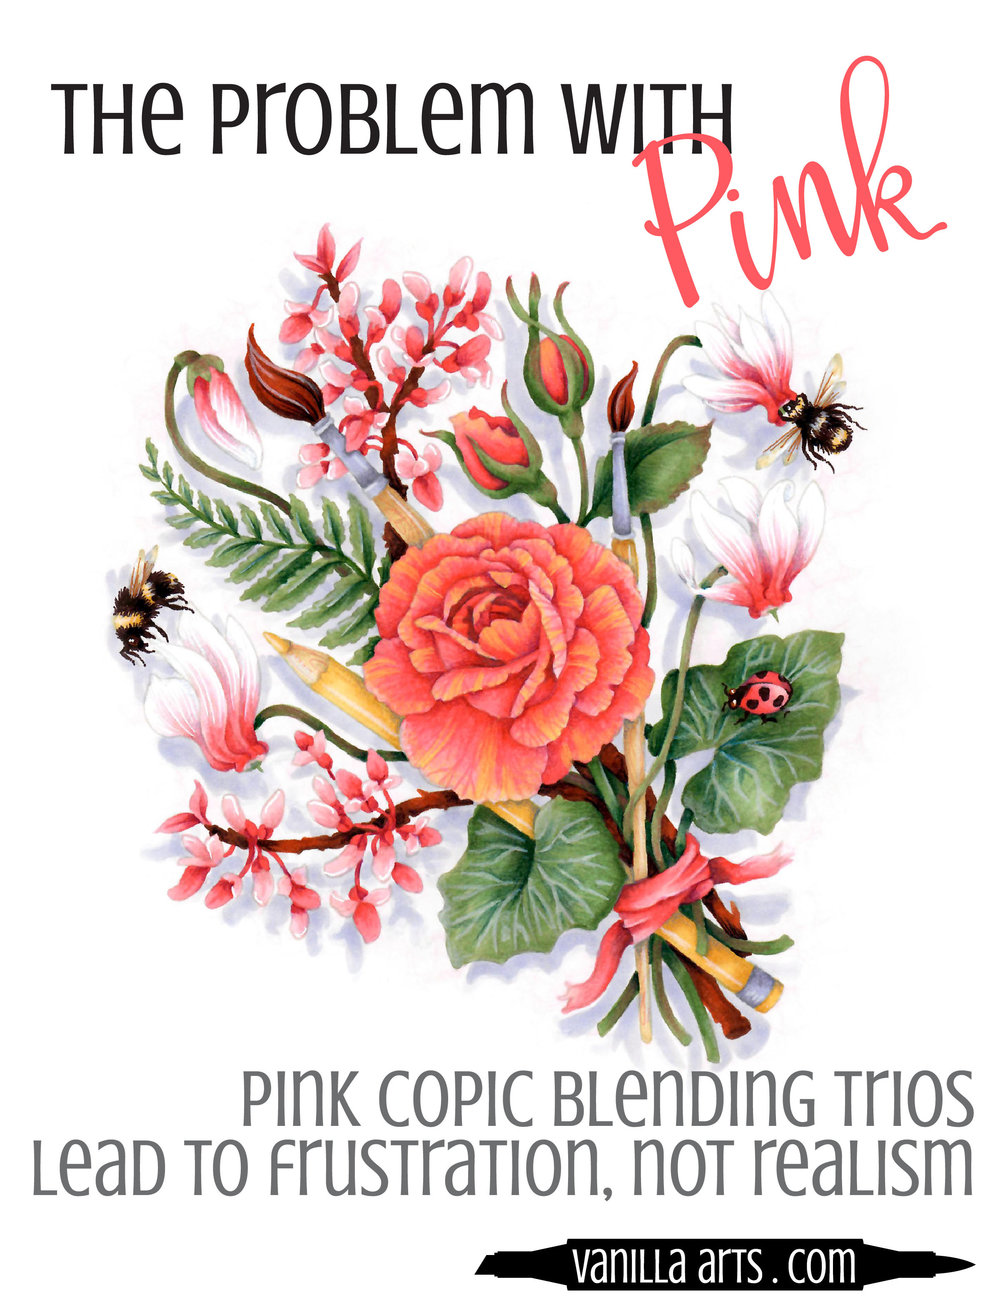 Pink Copic Blending Trios fail at realism. Why shading with red or hot pink markers disappoints you every time. | VanillaArts.com